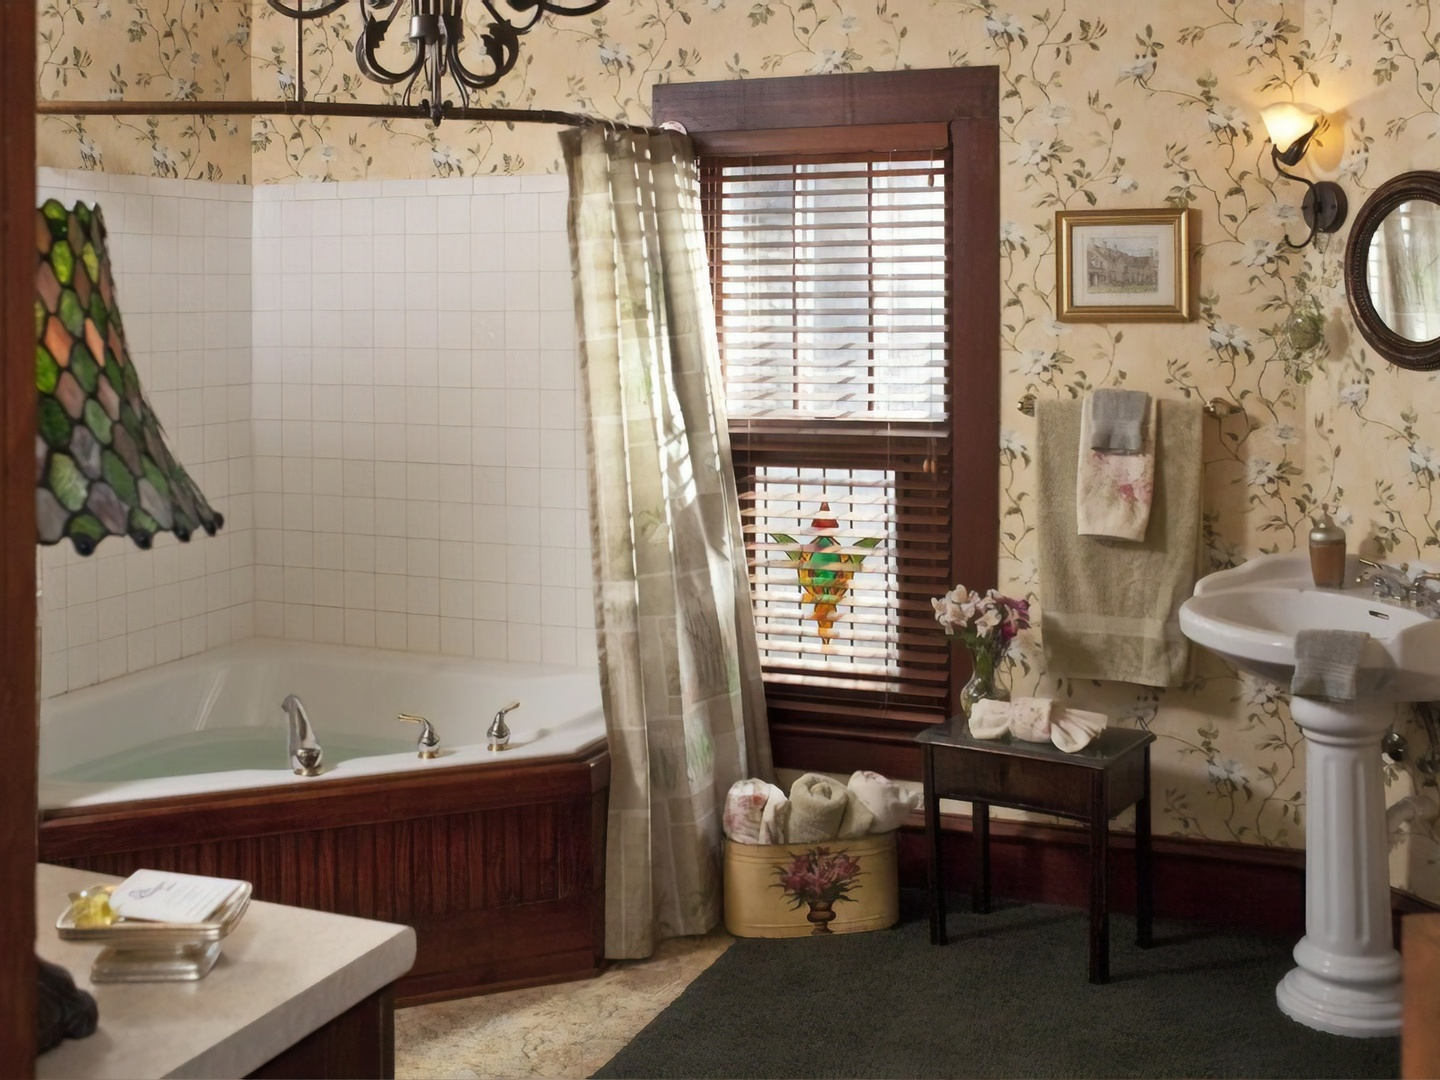 A room with a sink and a window at Cliff Cottage Inn - Boutique Hotel and Bed & Breakfast.